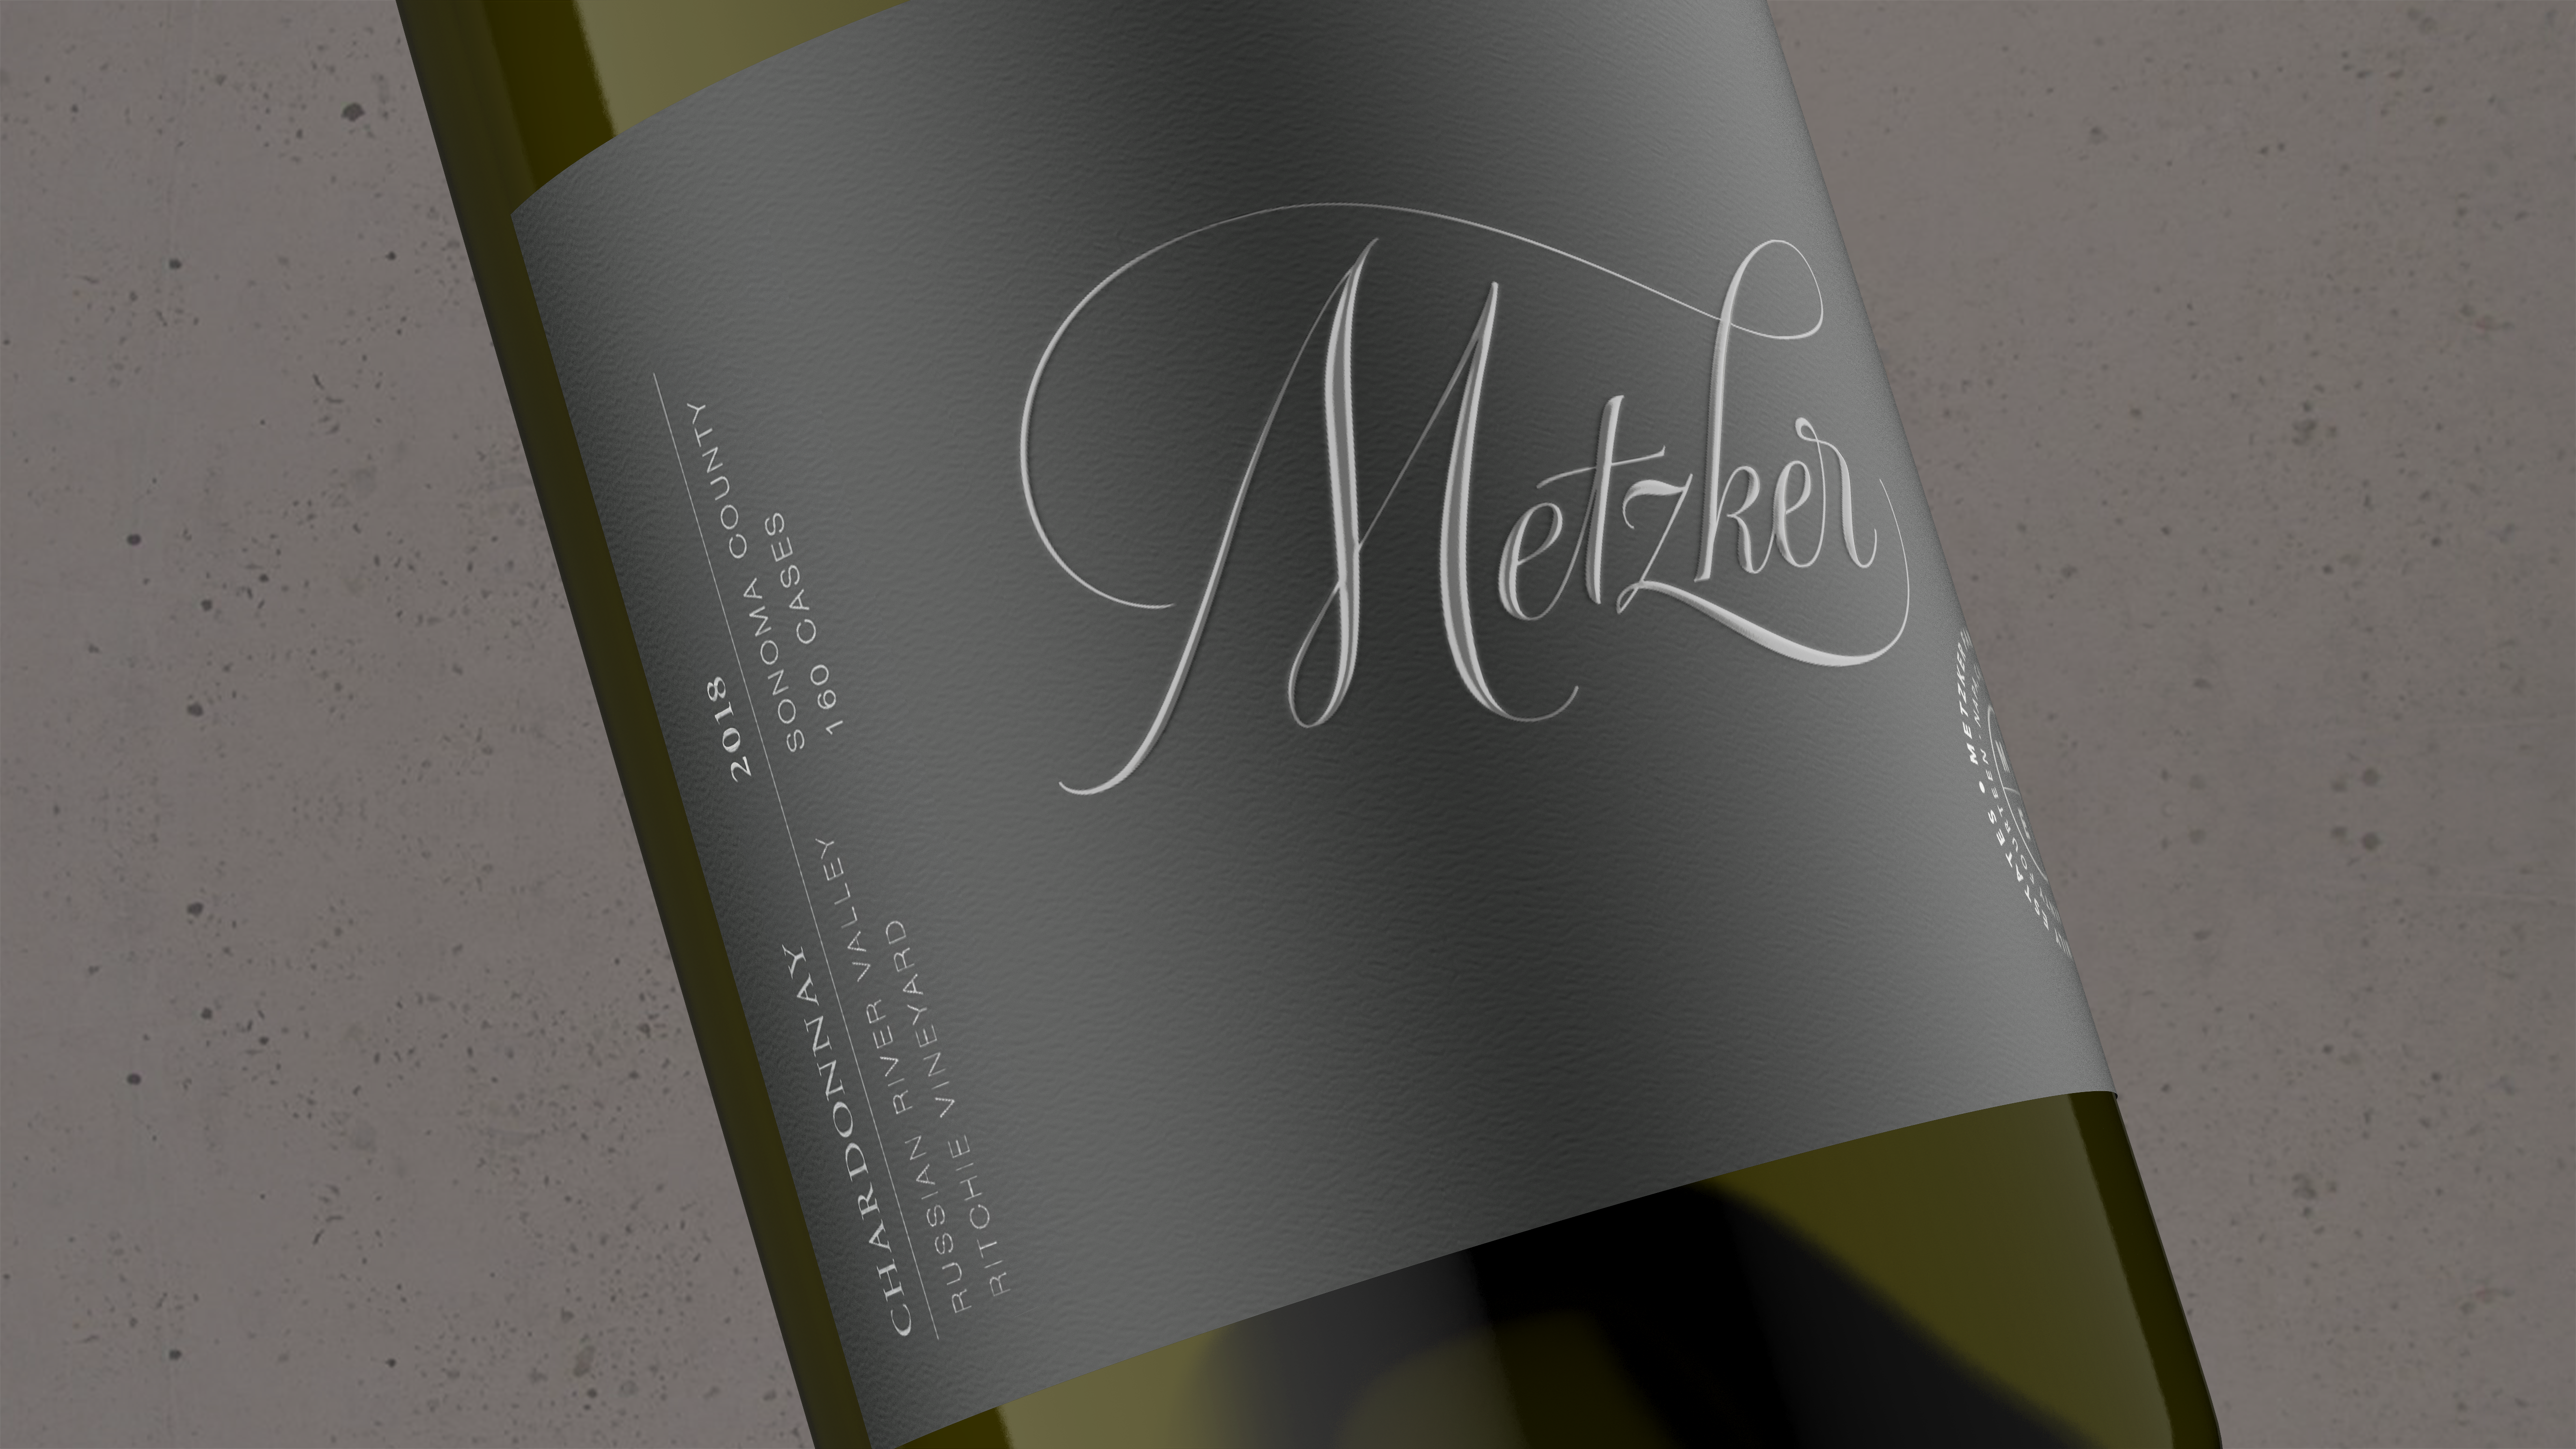 2018 Metzker Family Estates Chardonnay Ritchie Vineyard - Metzker Family Estates Wines